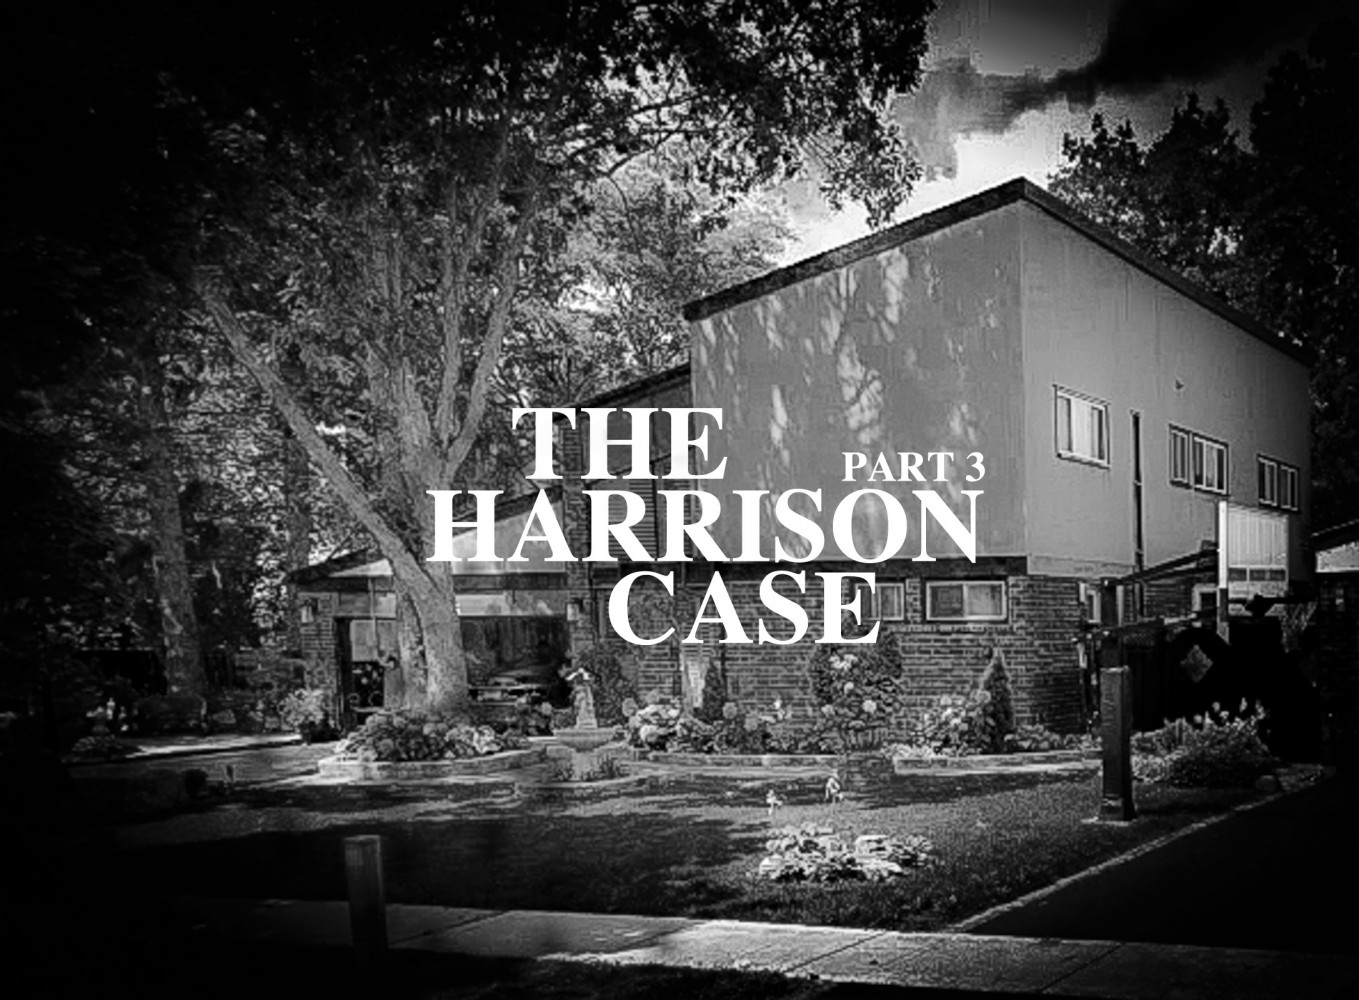 PART 3 - The Harrison murders: Peel police finally catch a killer, but expose their own failures